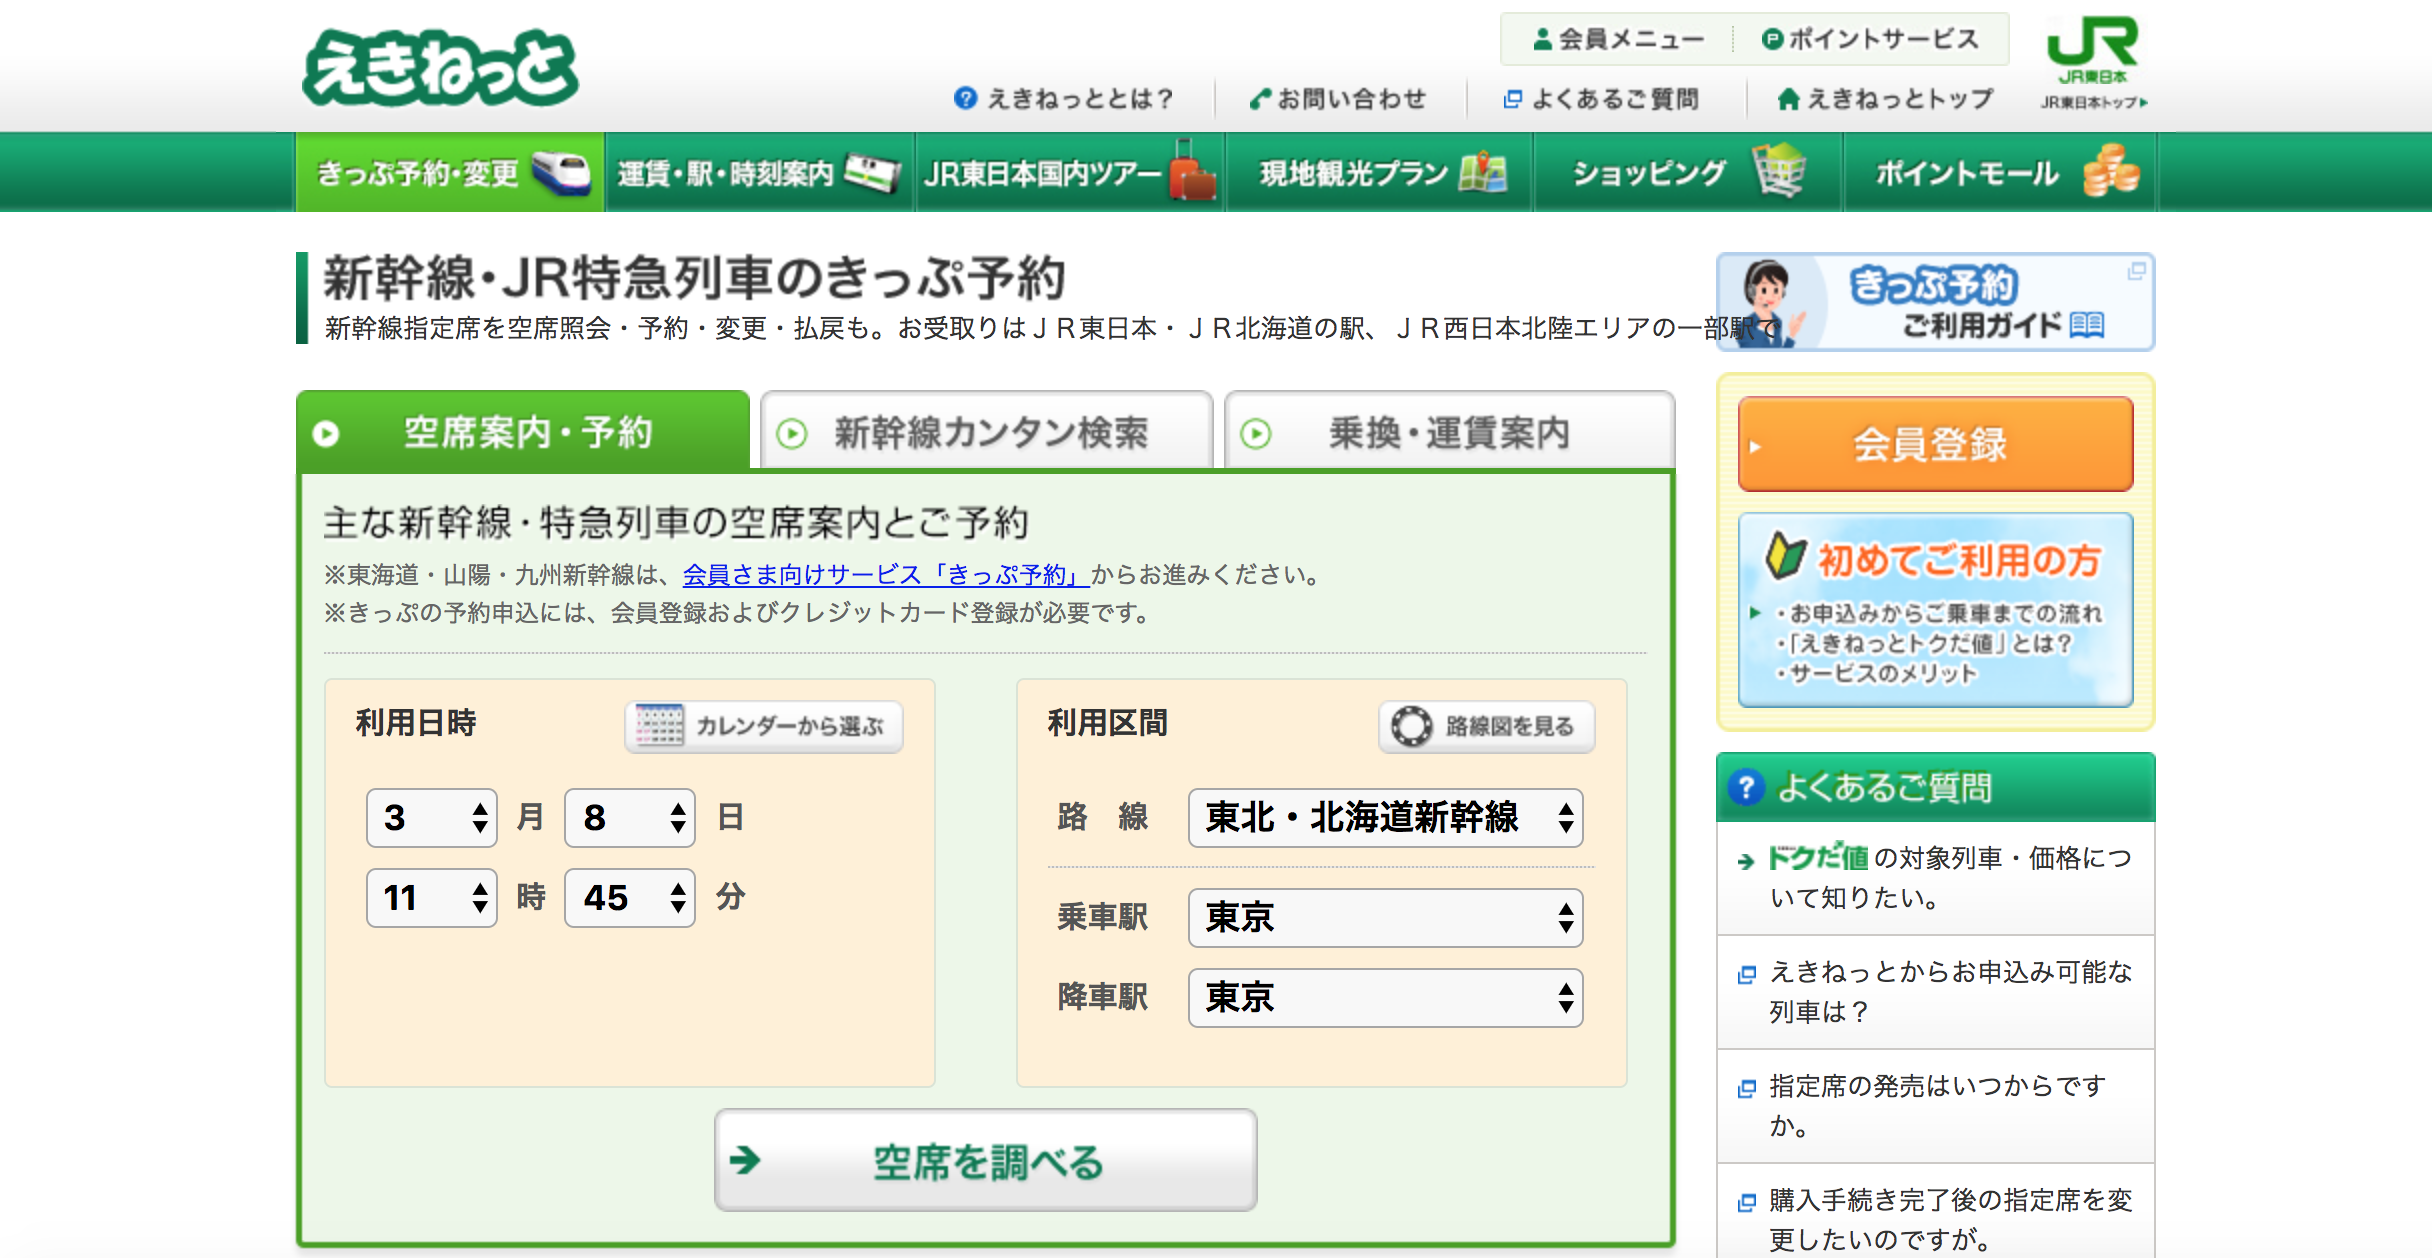 How to buy a Shinkasen ticket online